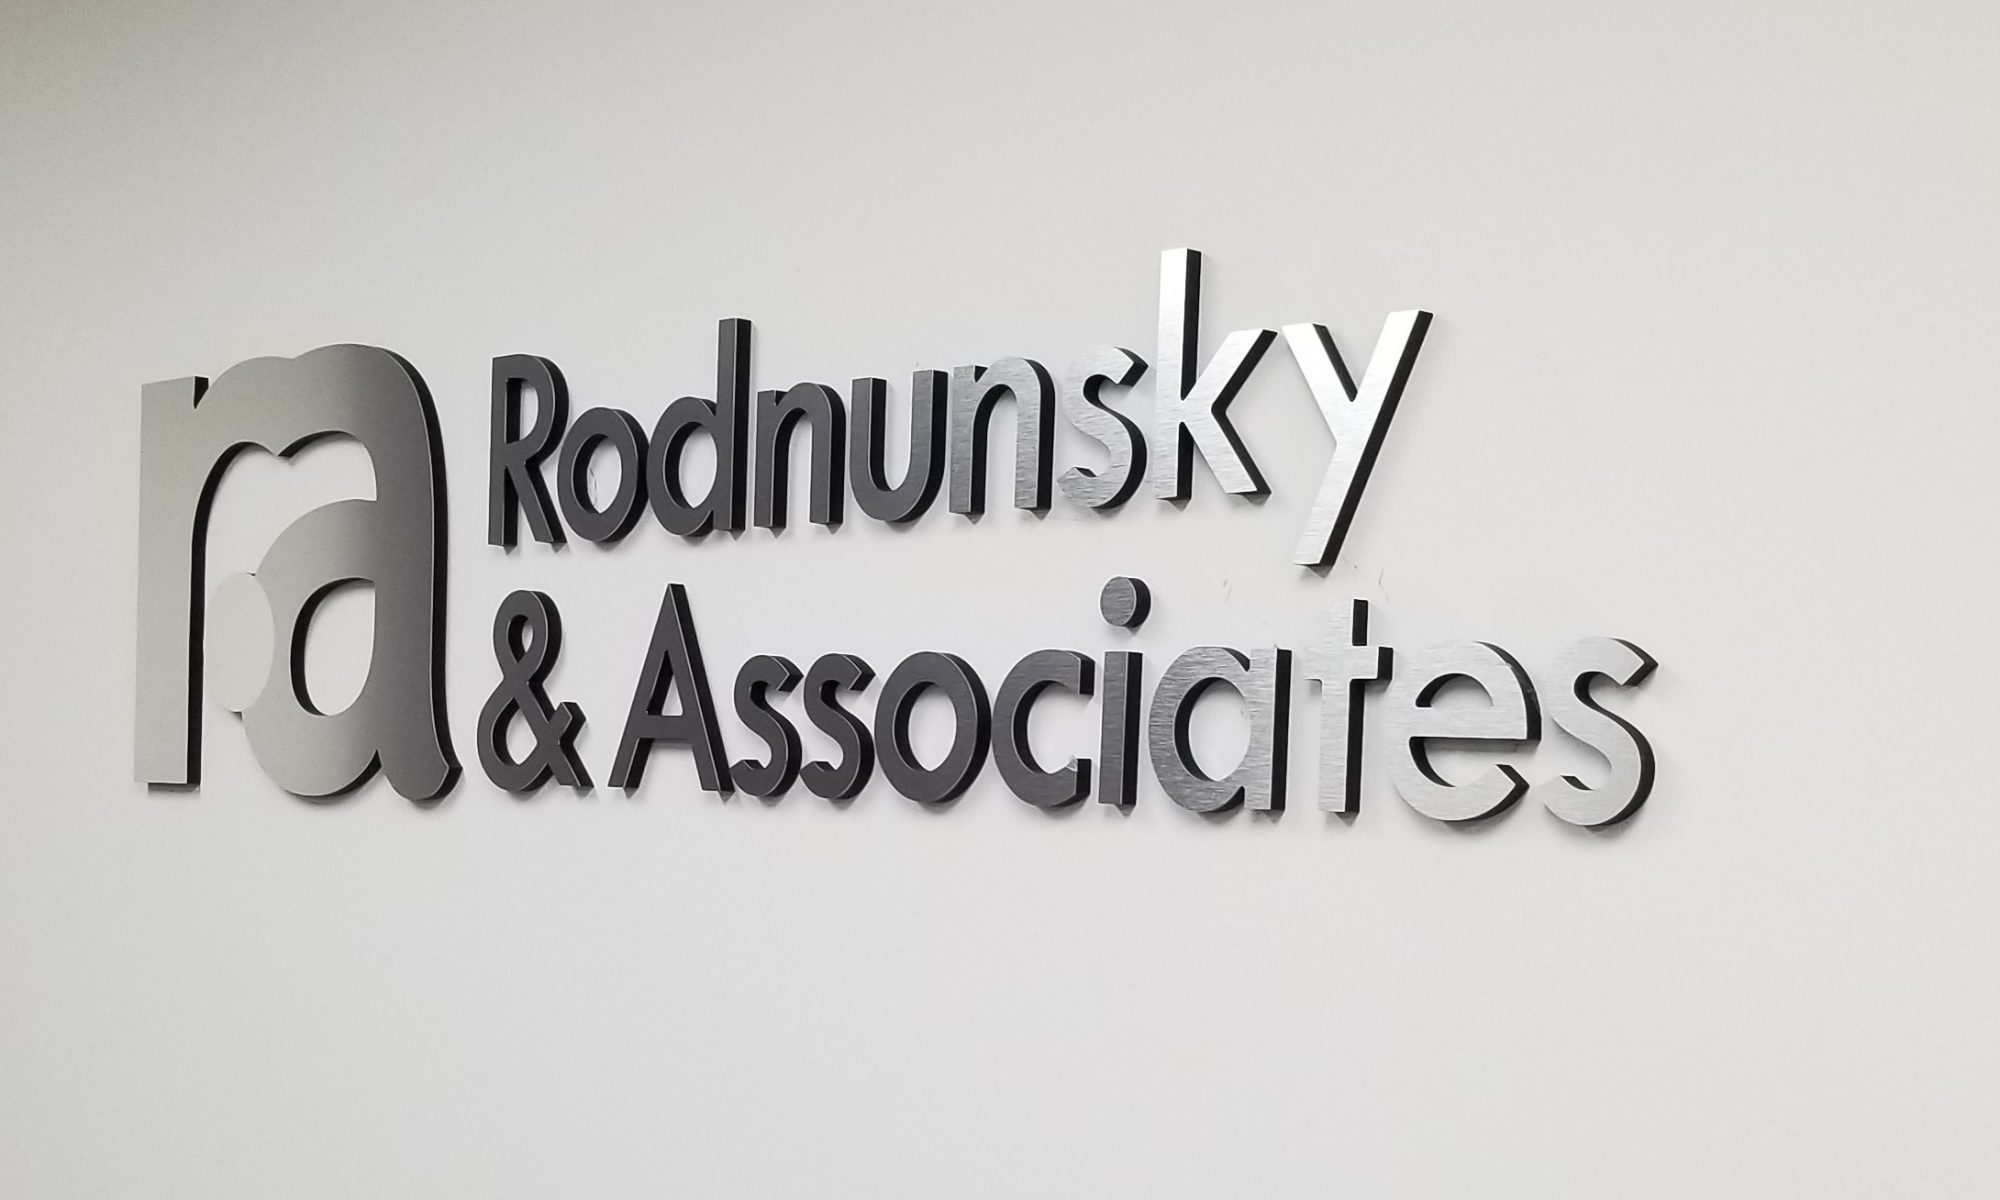 Our law firm lobby sign for Rodnunsky and Associates composed of laser cut black acrylic with brushed metal lettering and polished metal.